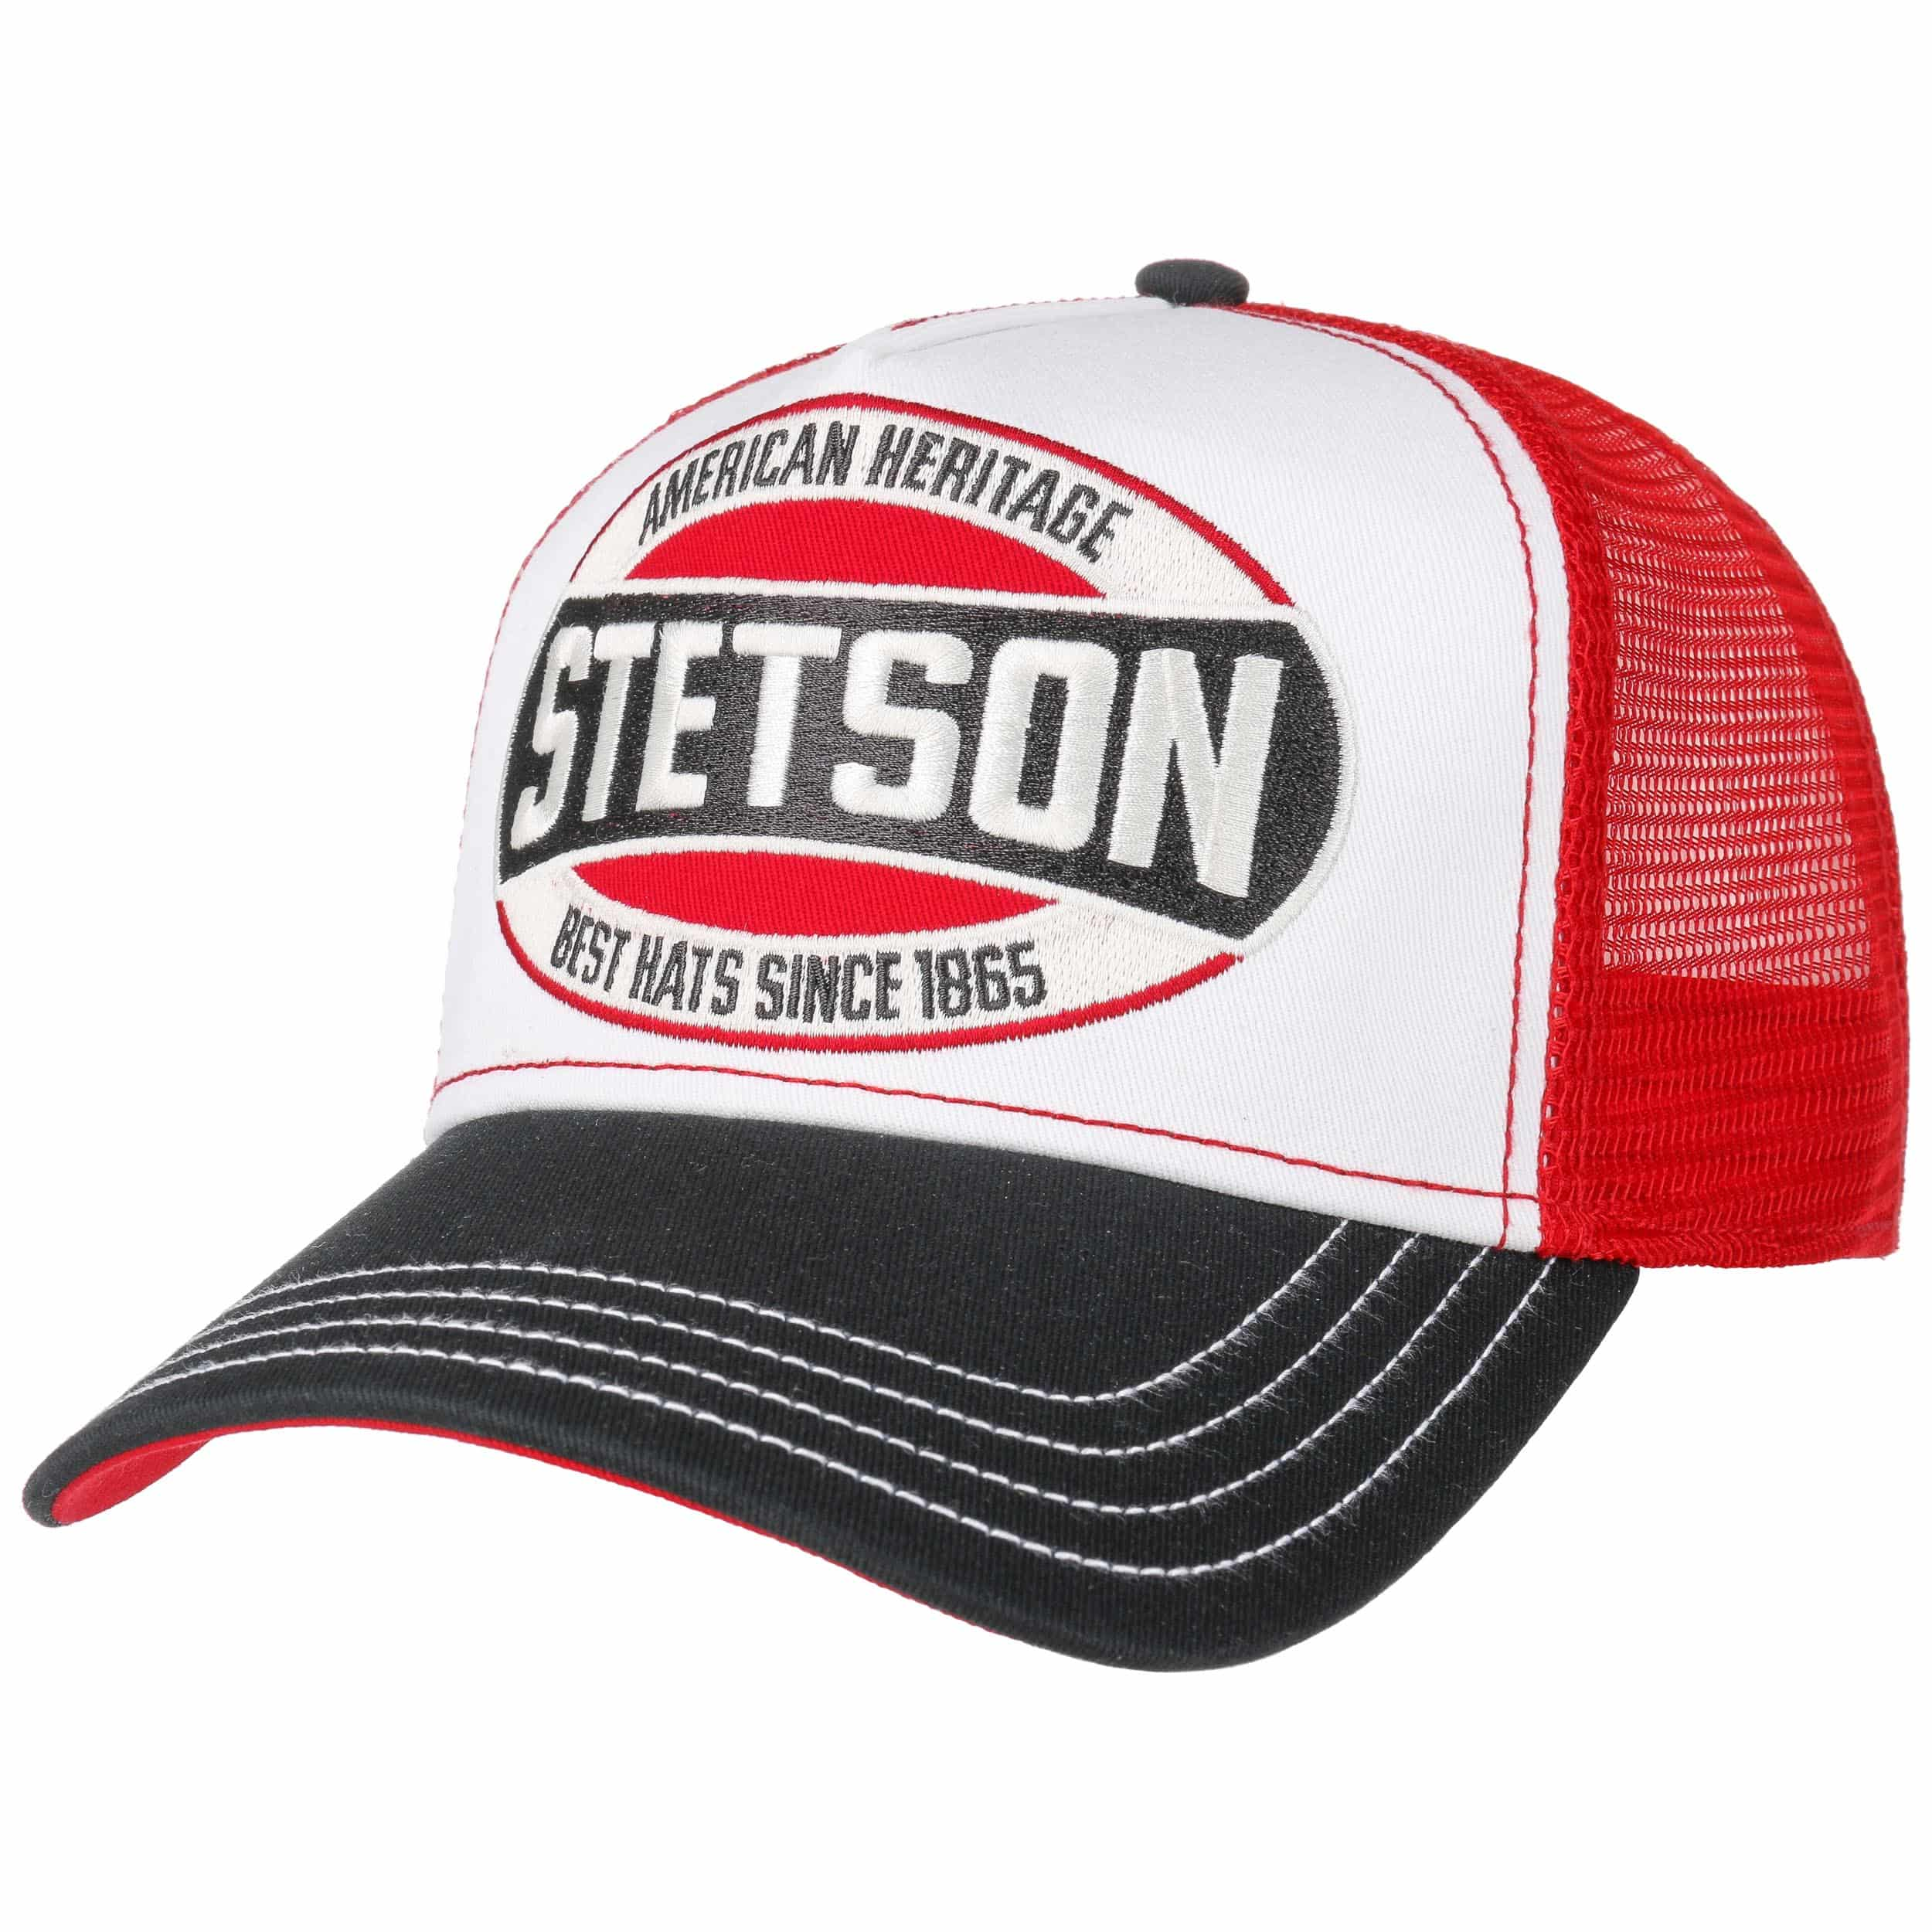 e6e6f1ac578 Herie Best Hats Trucker Cap By Stetson Eur 29 00 Caps. Embroidered Trucker  Hat